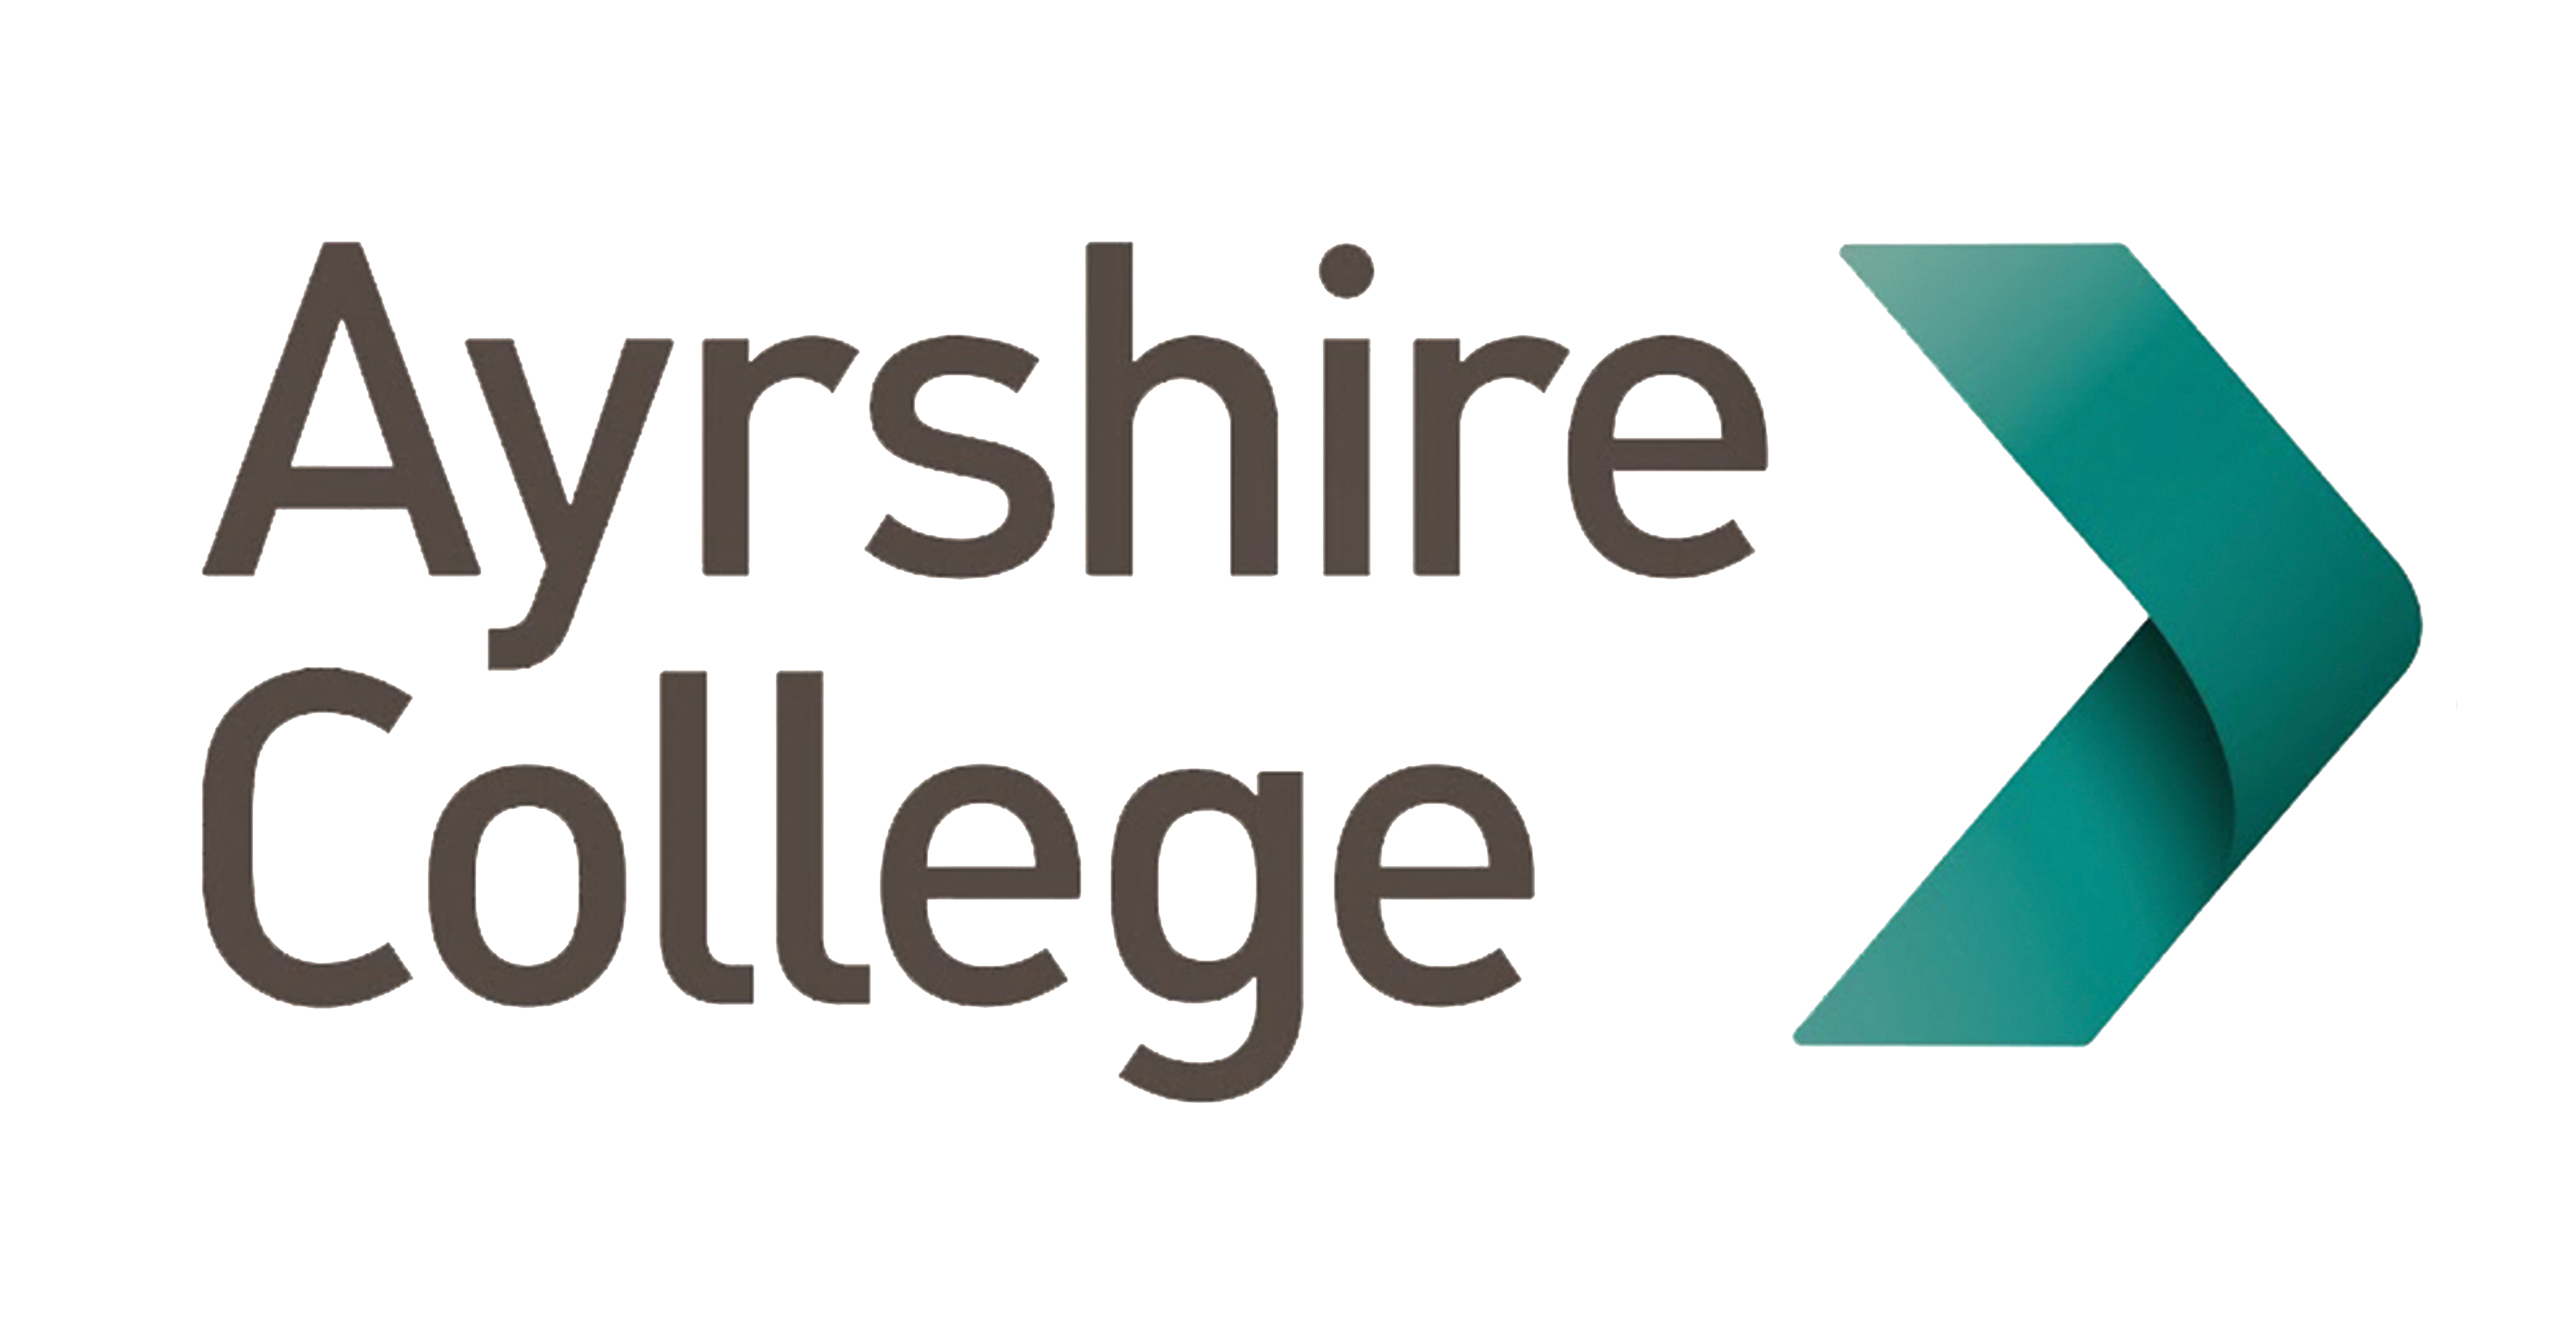 Visit Ayrshire College website